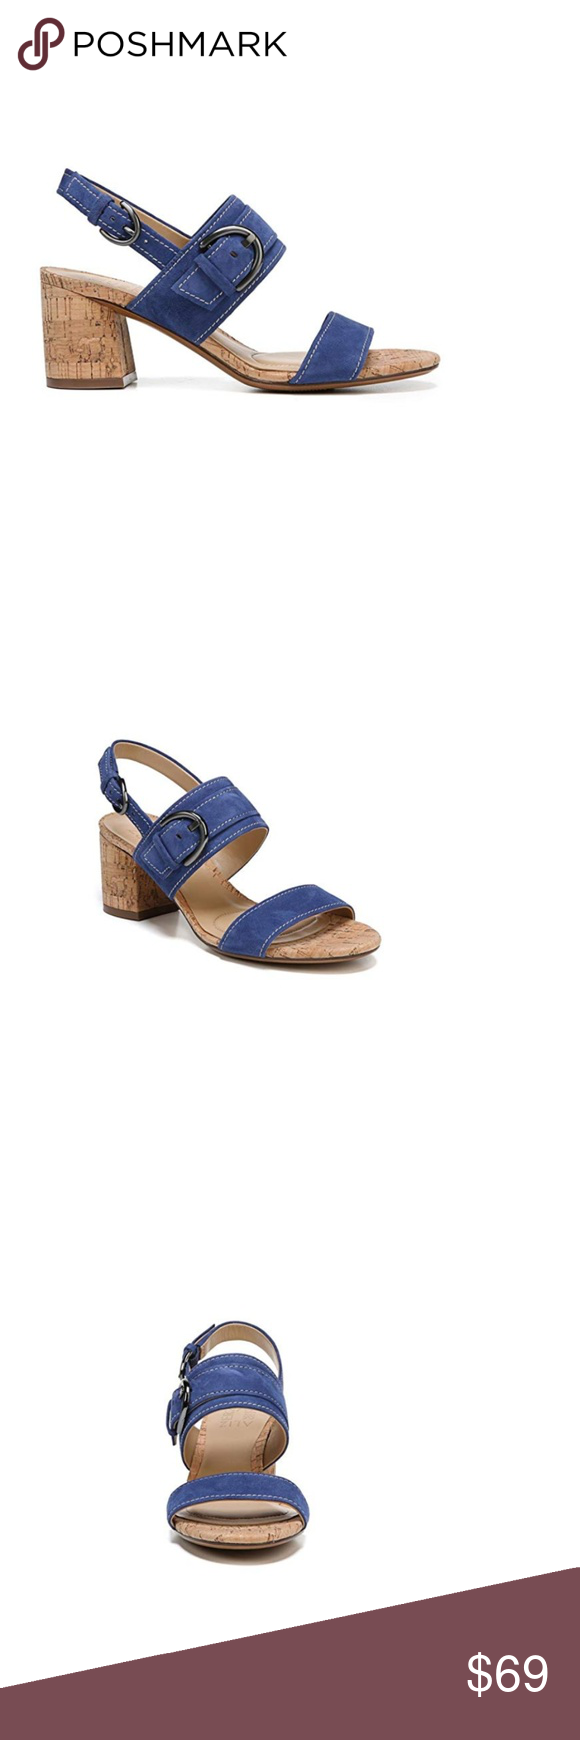 a063d3ad40f3 Naturalizer Camden Dress Sandals